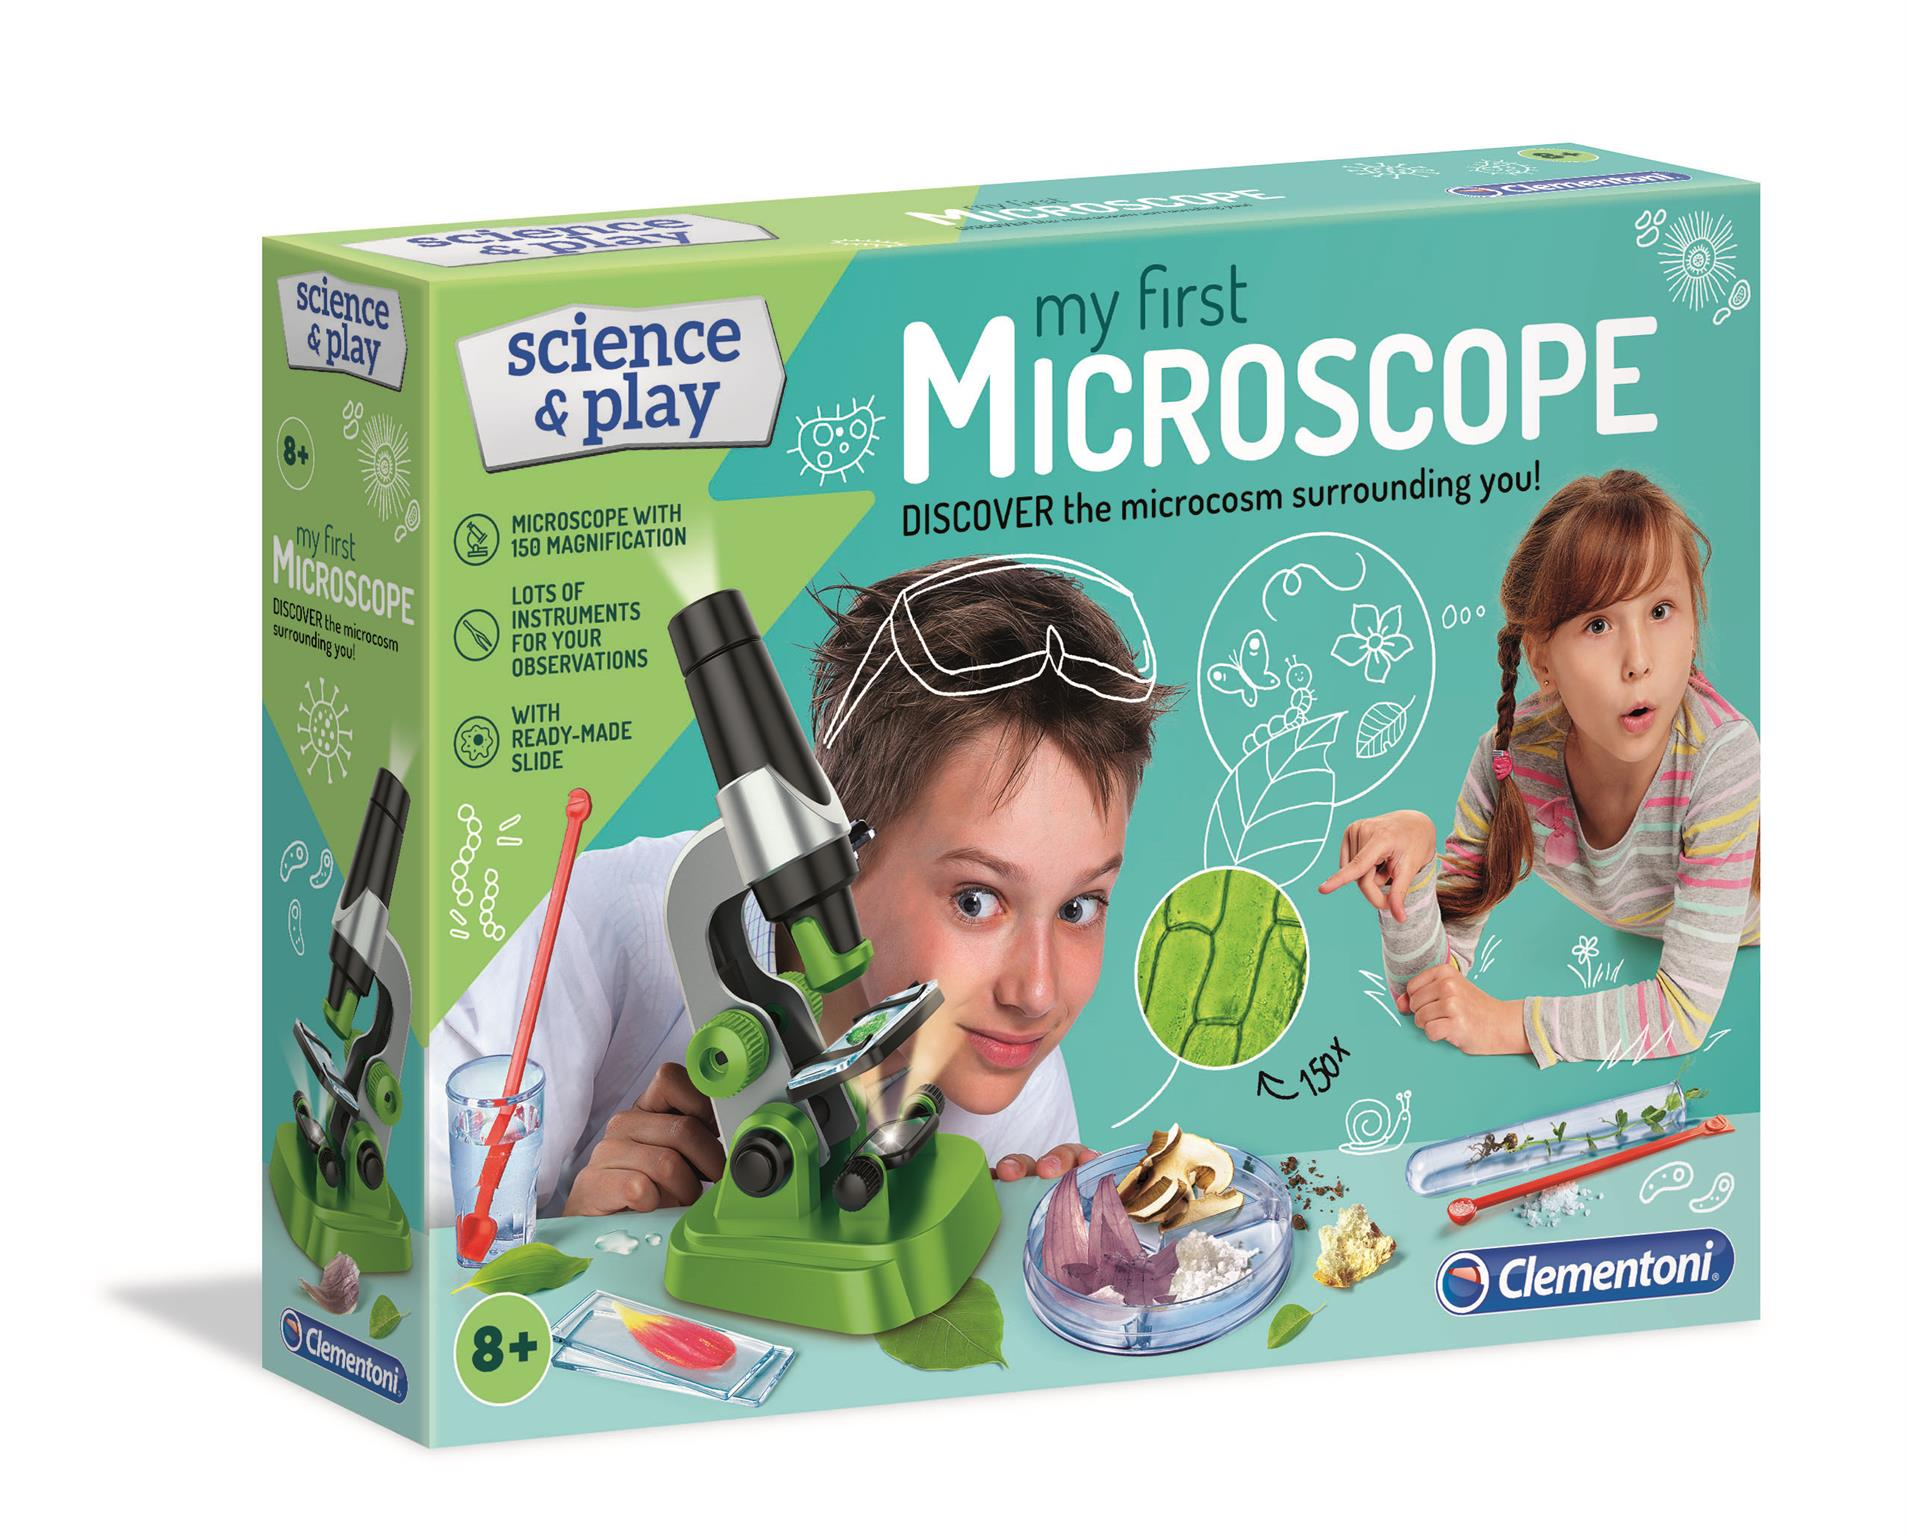 Clementoni 61724 Clementoni-61724-Science and Play-Microscope-Made in Italy-Science Toy-Laboratory and esperiment kit for Kids from 8 Years Old and Older English